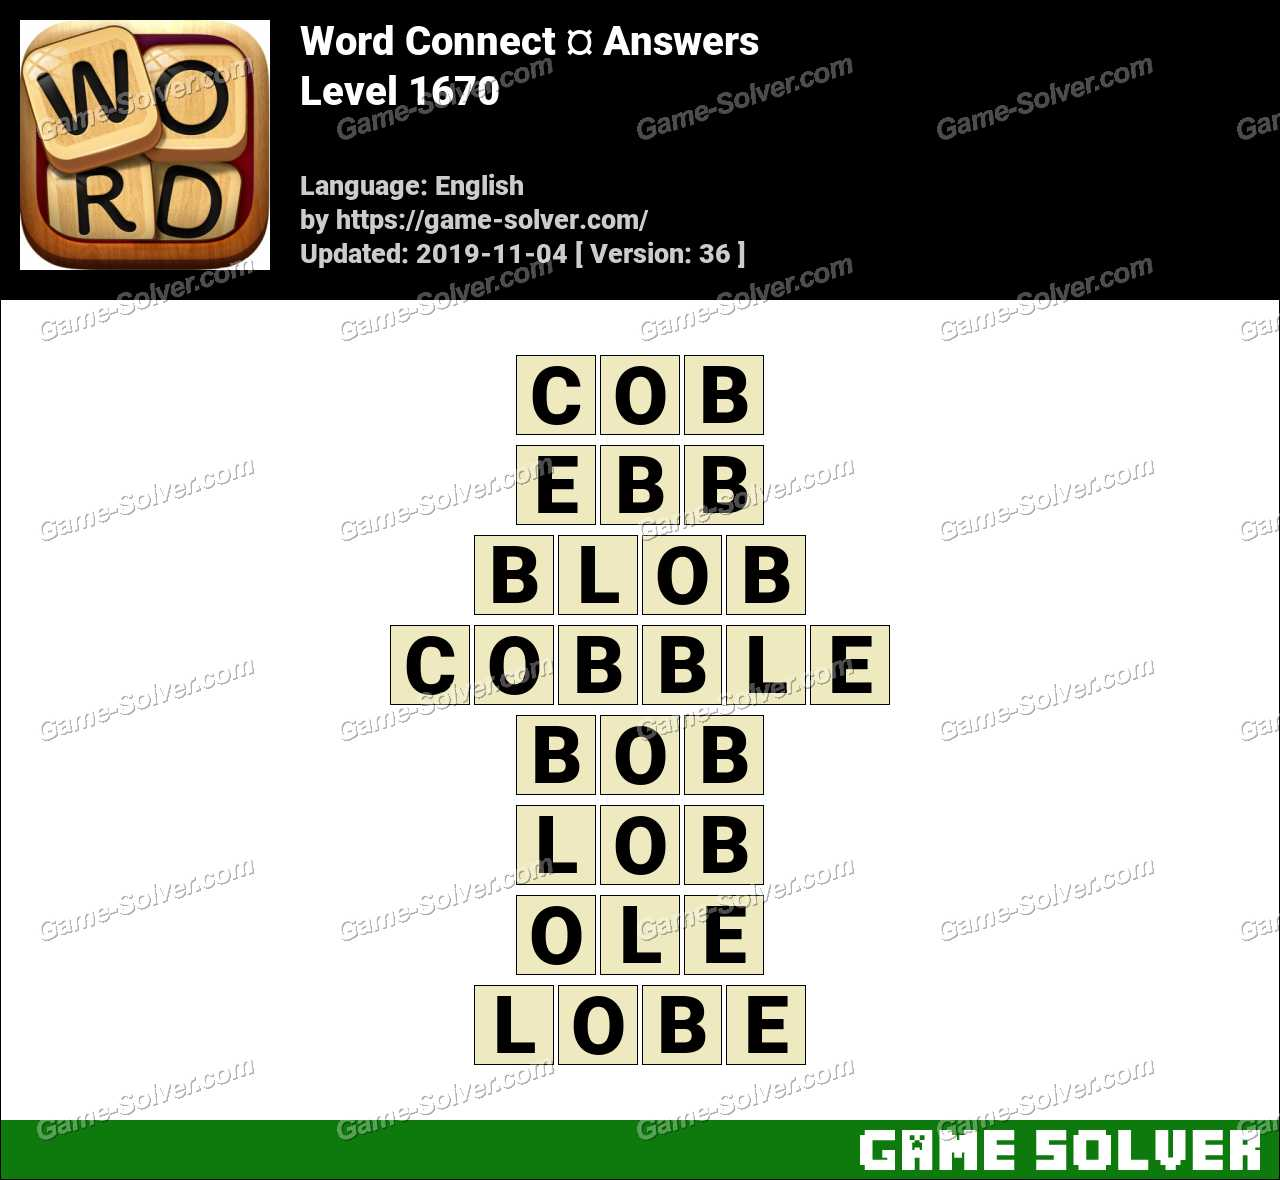 Word Connect Level 1670 Answers